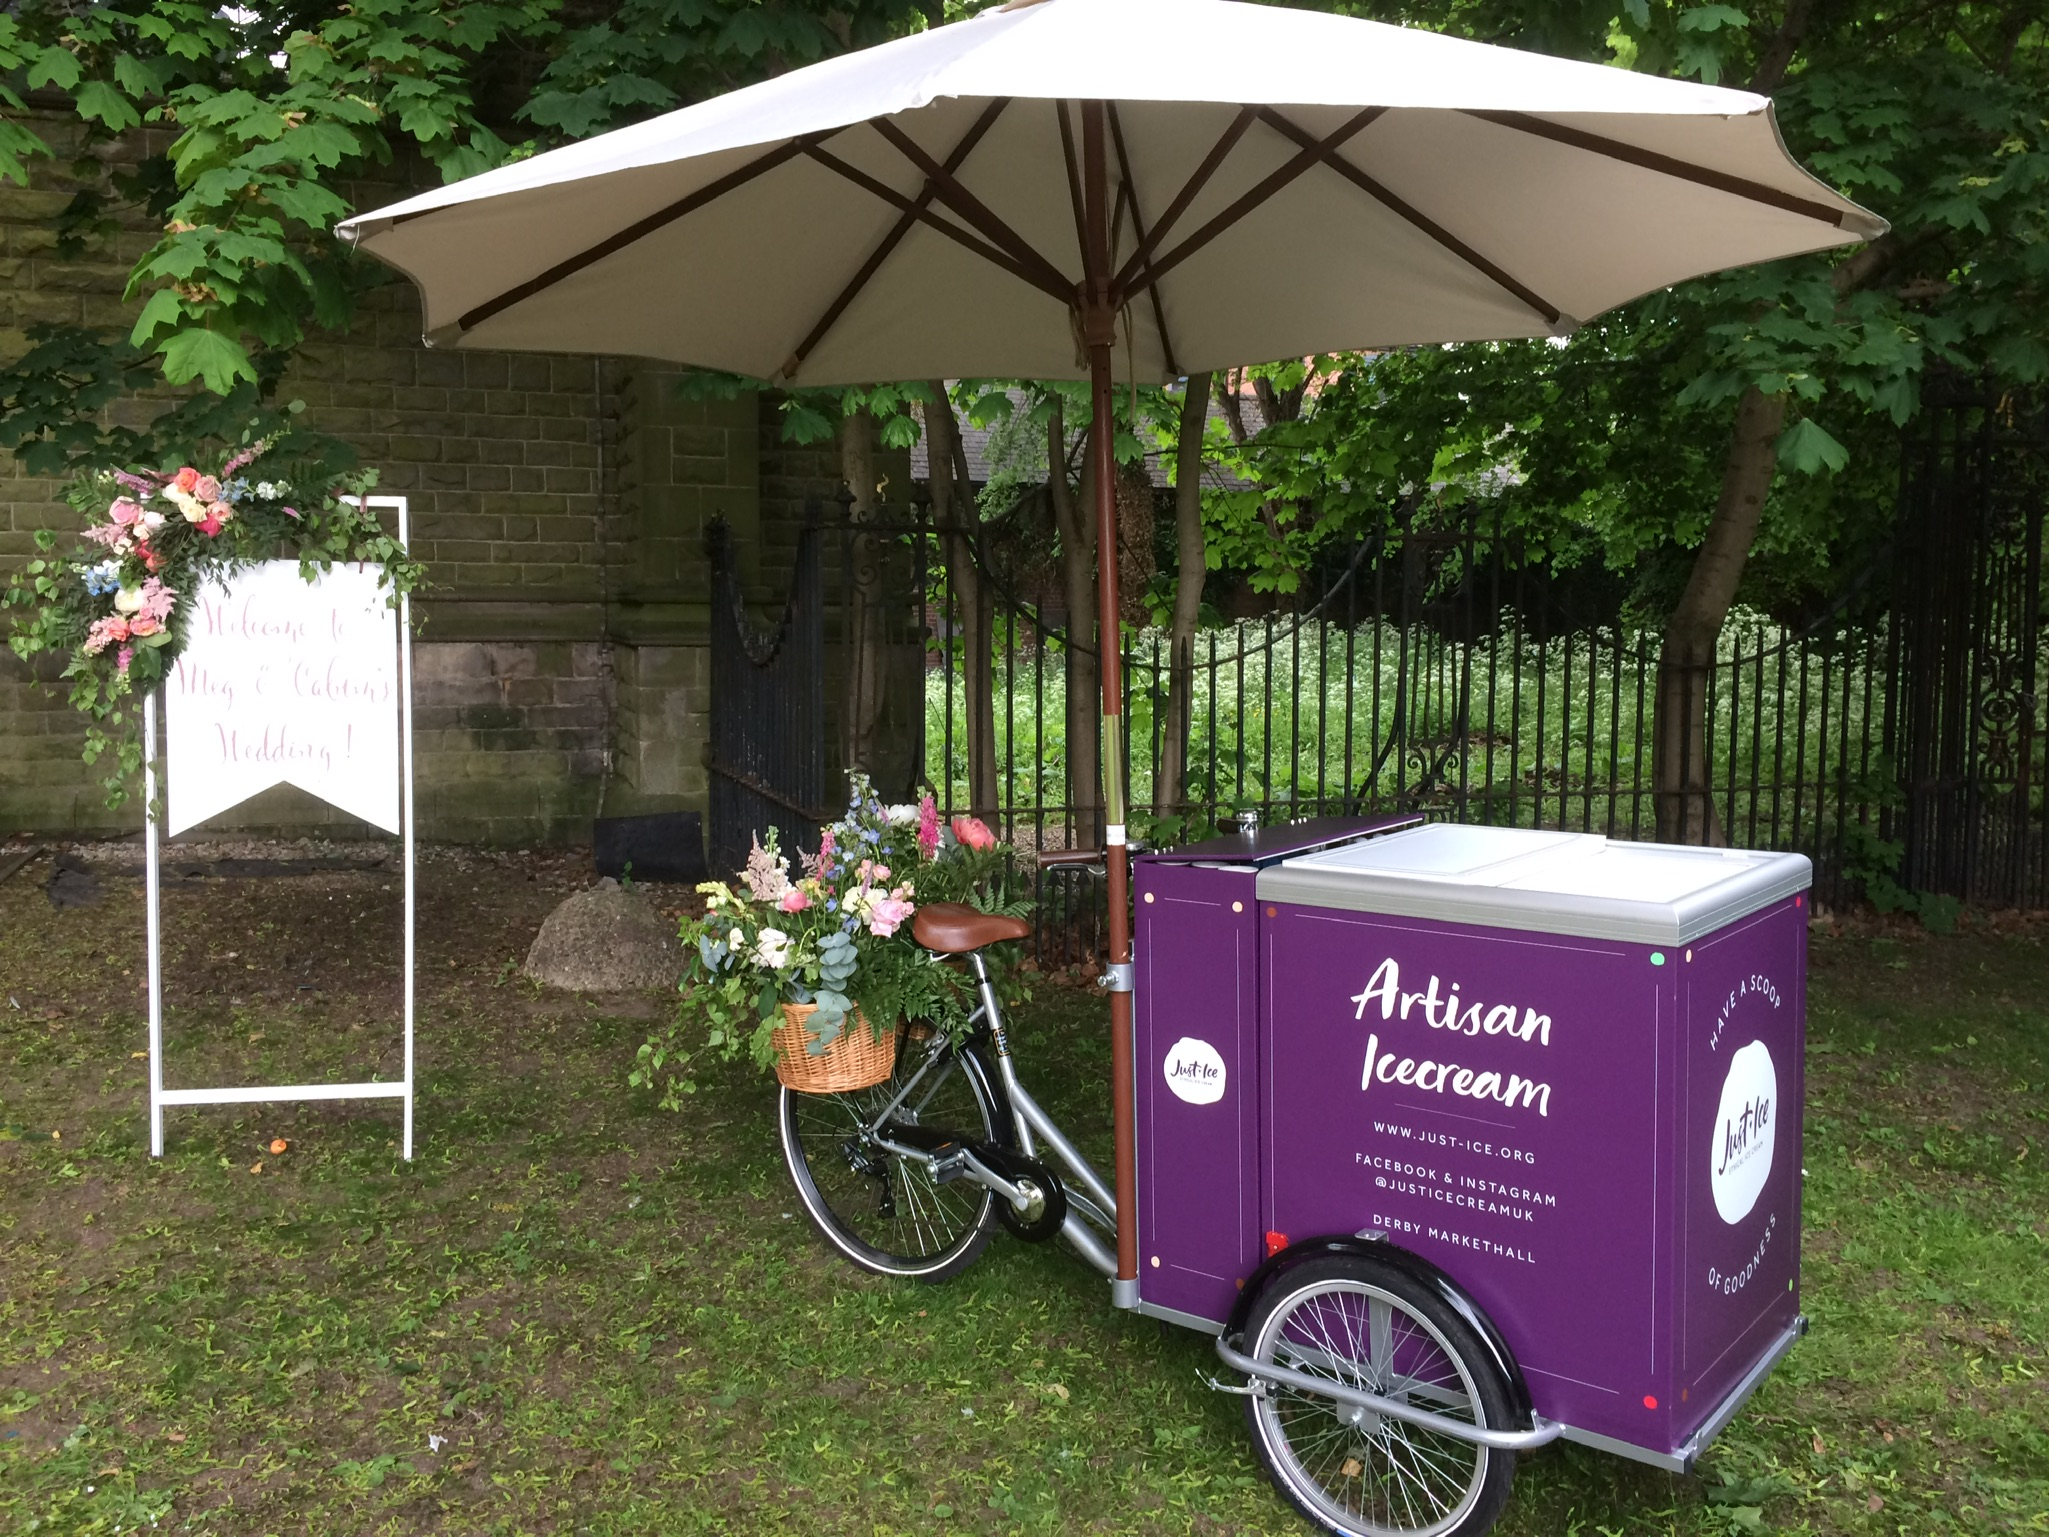 Meet Wilbur - Named after William Wilberforce, Wilbur is our beloved trike who adds a glorious spectacle to any event. He can serve 6 different flavours of ice cream from under his parasol and enjoys being decorated to fit any particular theme you would like. He can be used both indoors (so long as there is sufficient access) and outdoors.